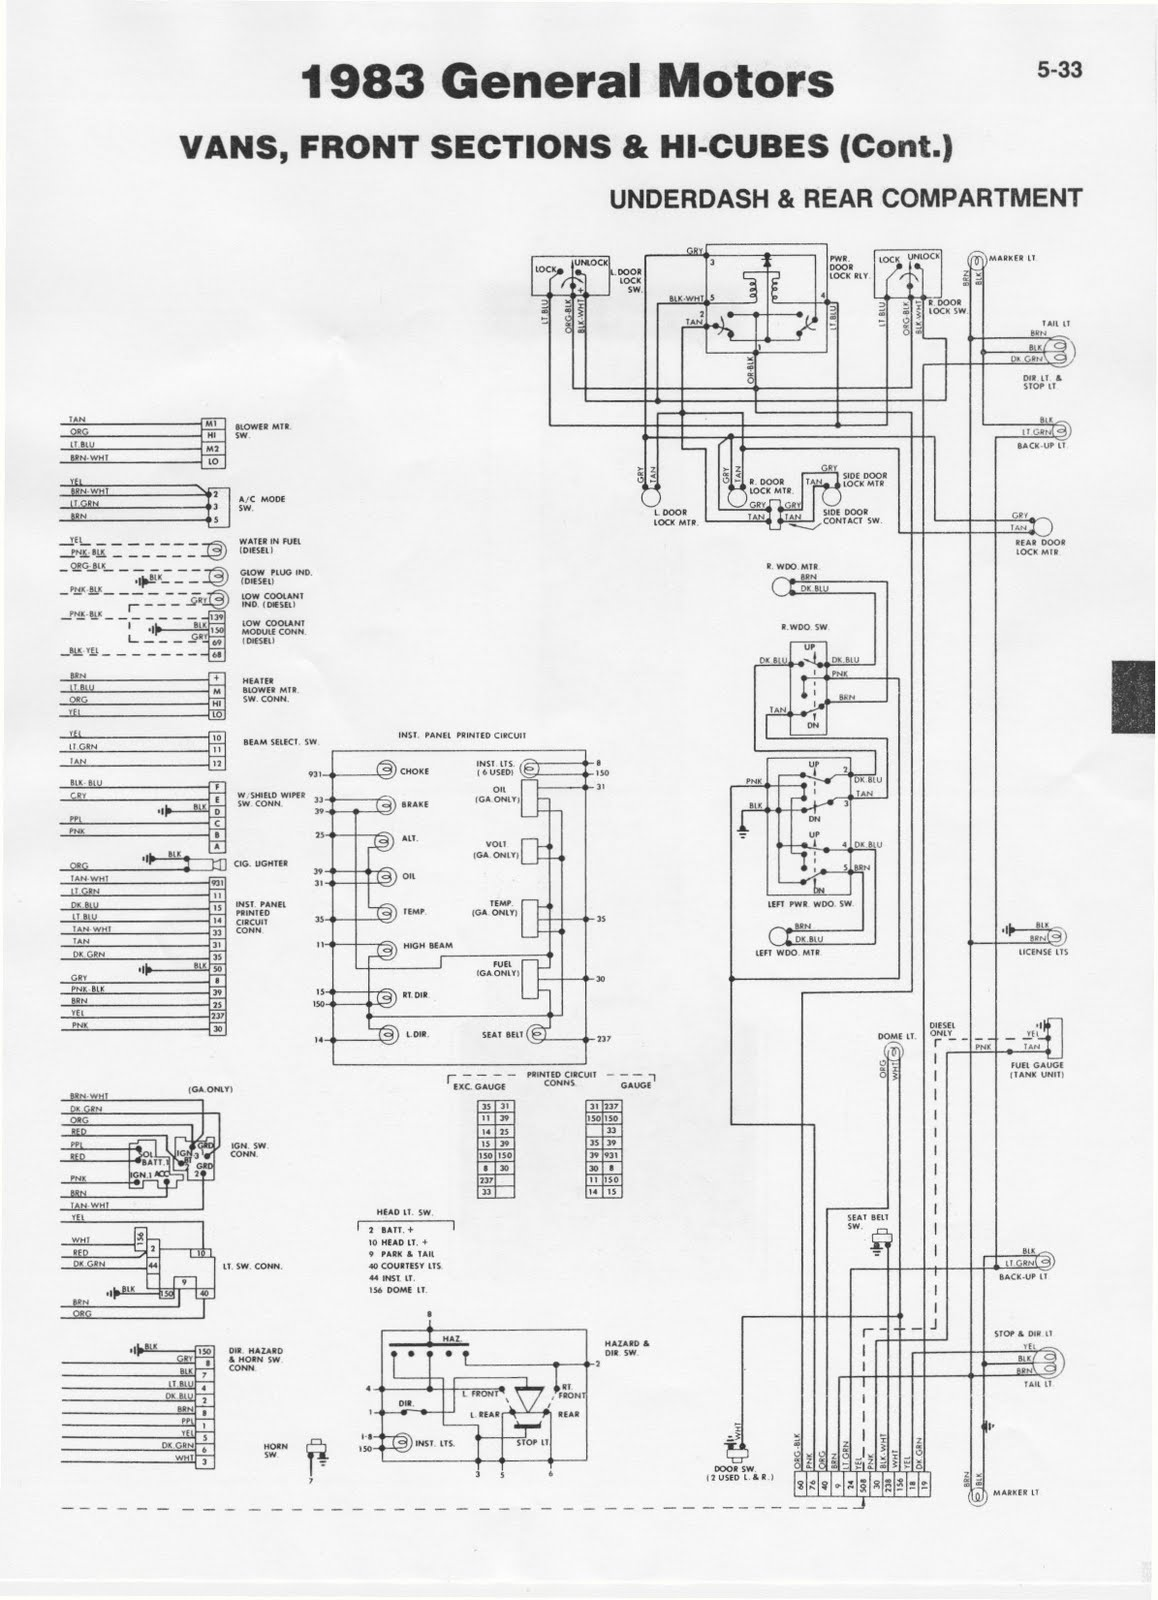 1984 Pace Arrow Wiring Diagram | Wiring Schematic Diagram  Battery Wiring Diagram For Fleetwood Southwind on